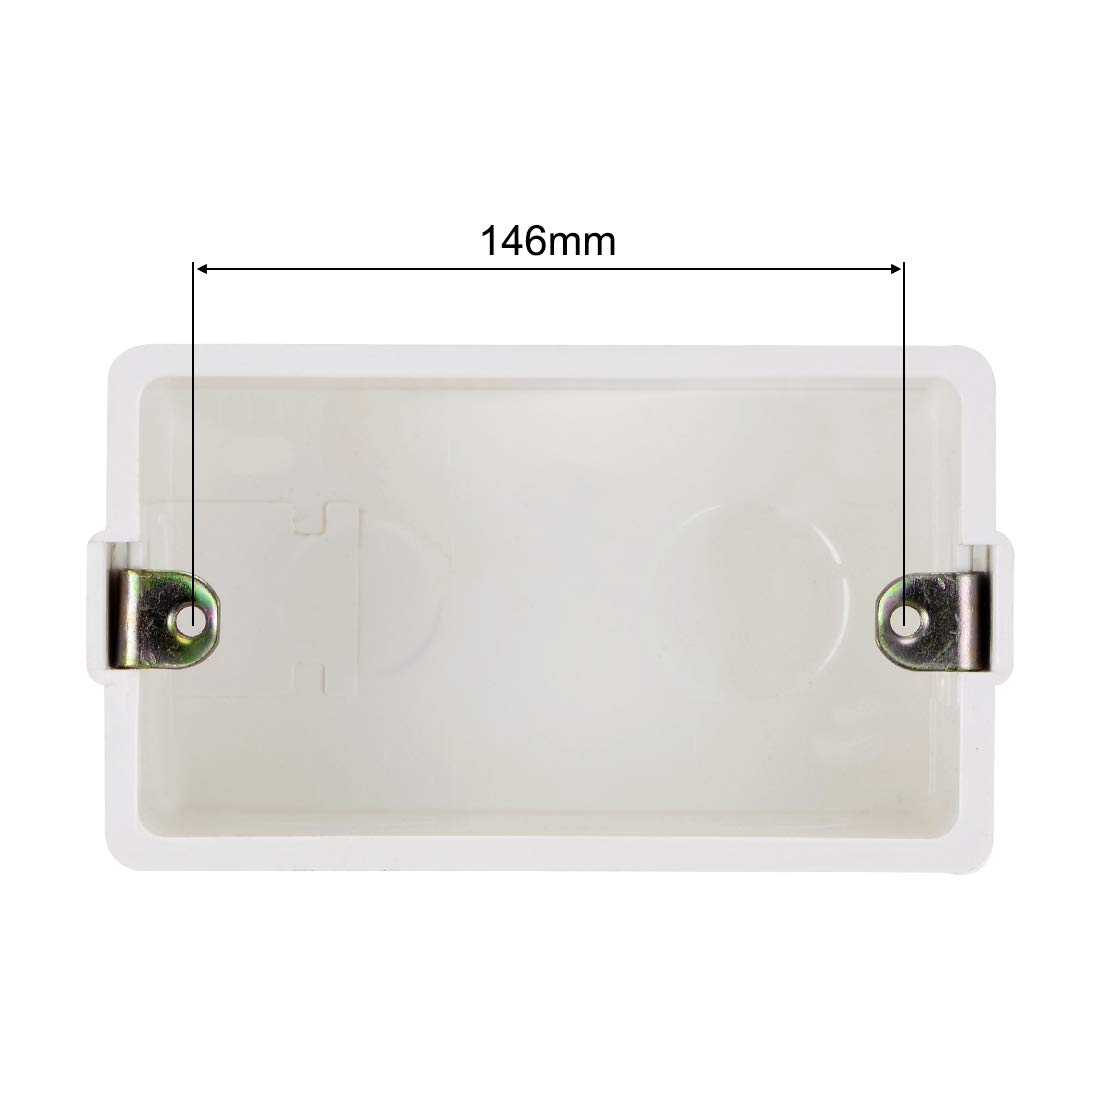 32 2pcs 86 sourcing map Wall Switch Box Deep Case Recessed Mount 86 Type Single Gang White 173